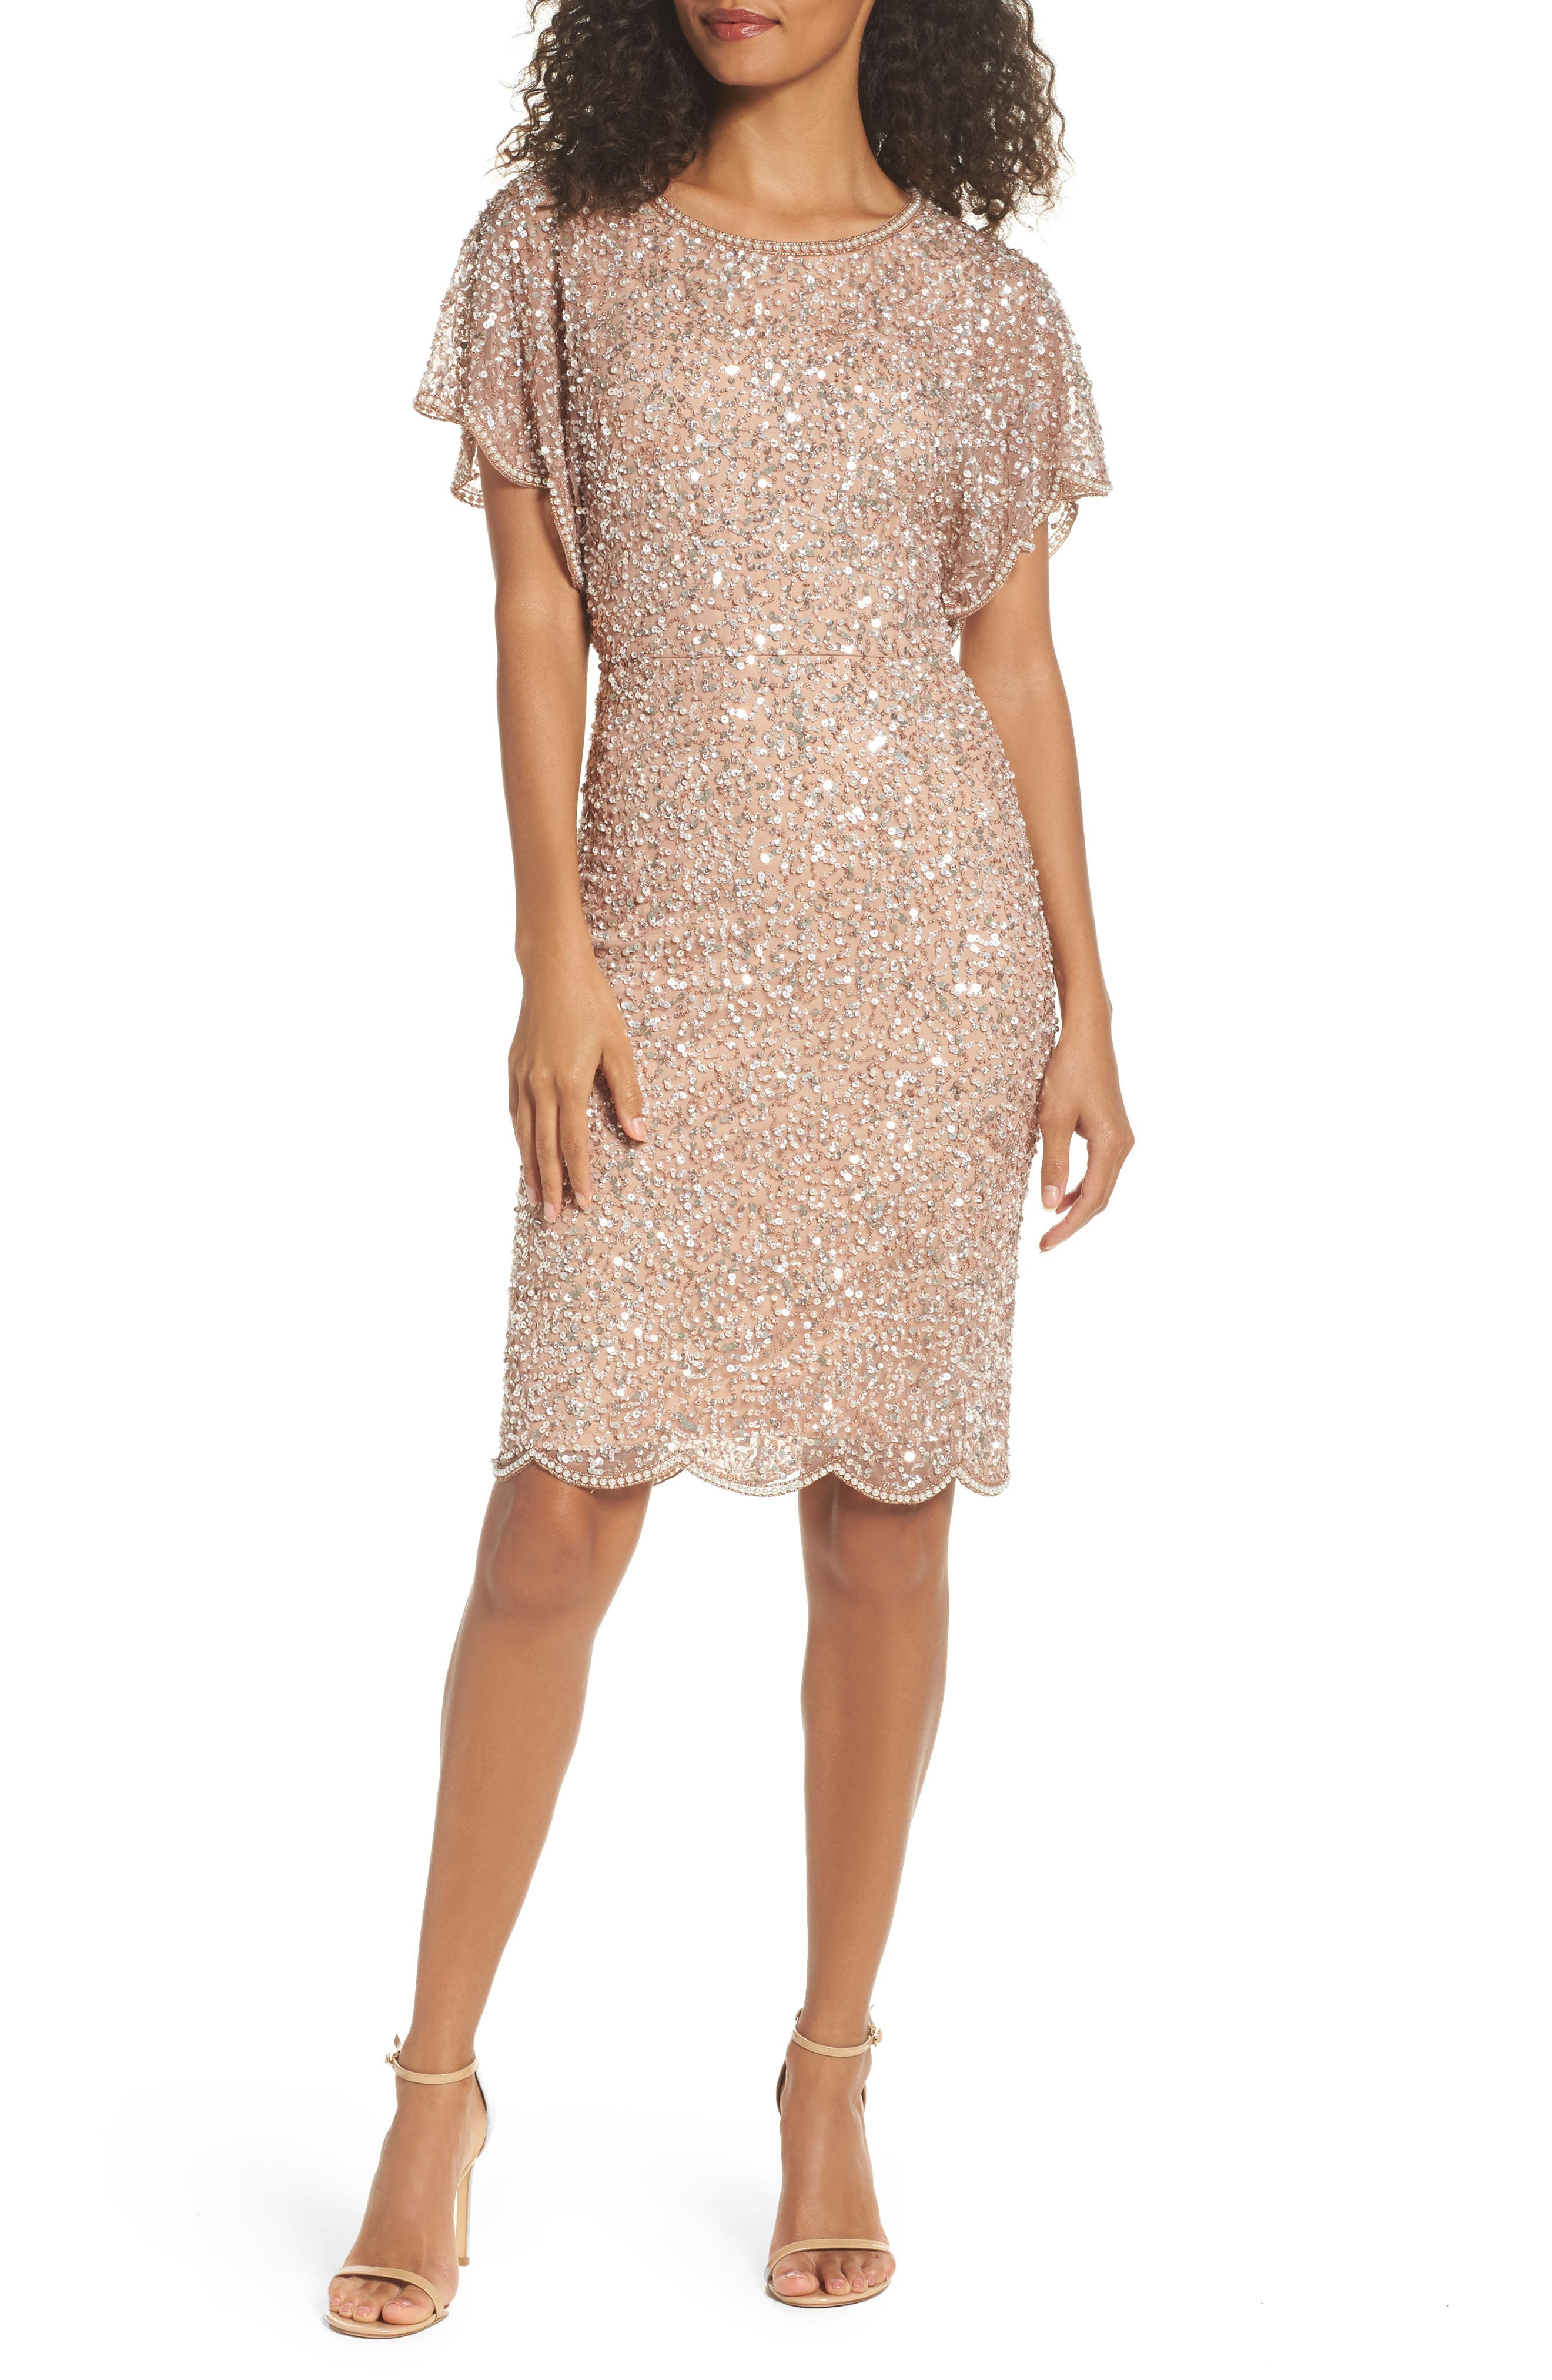 Main Image - Adrianna Papell Embellished Flutter Sleeve Cocktail Dress